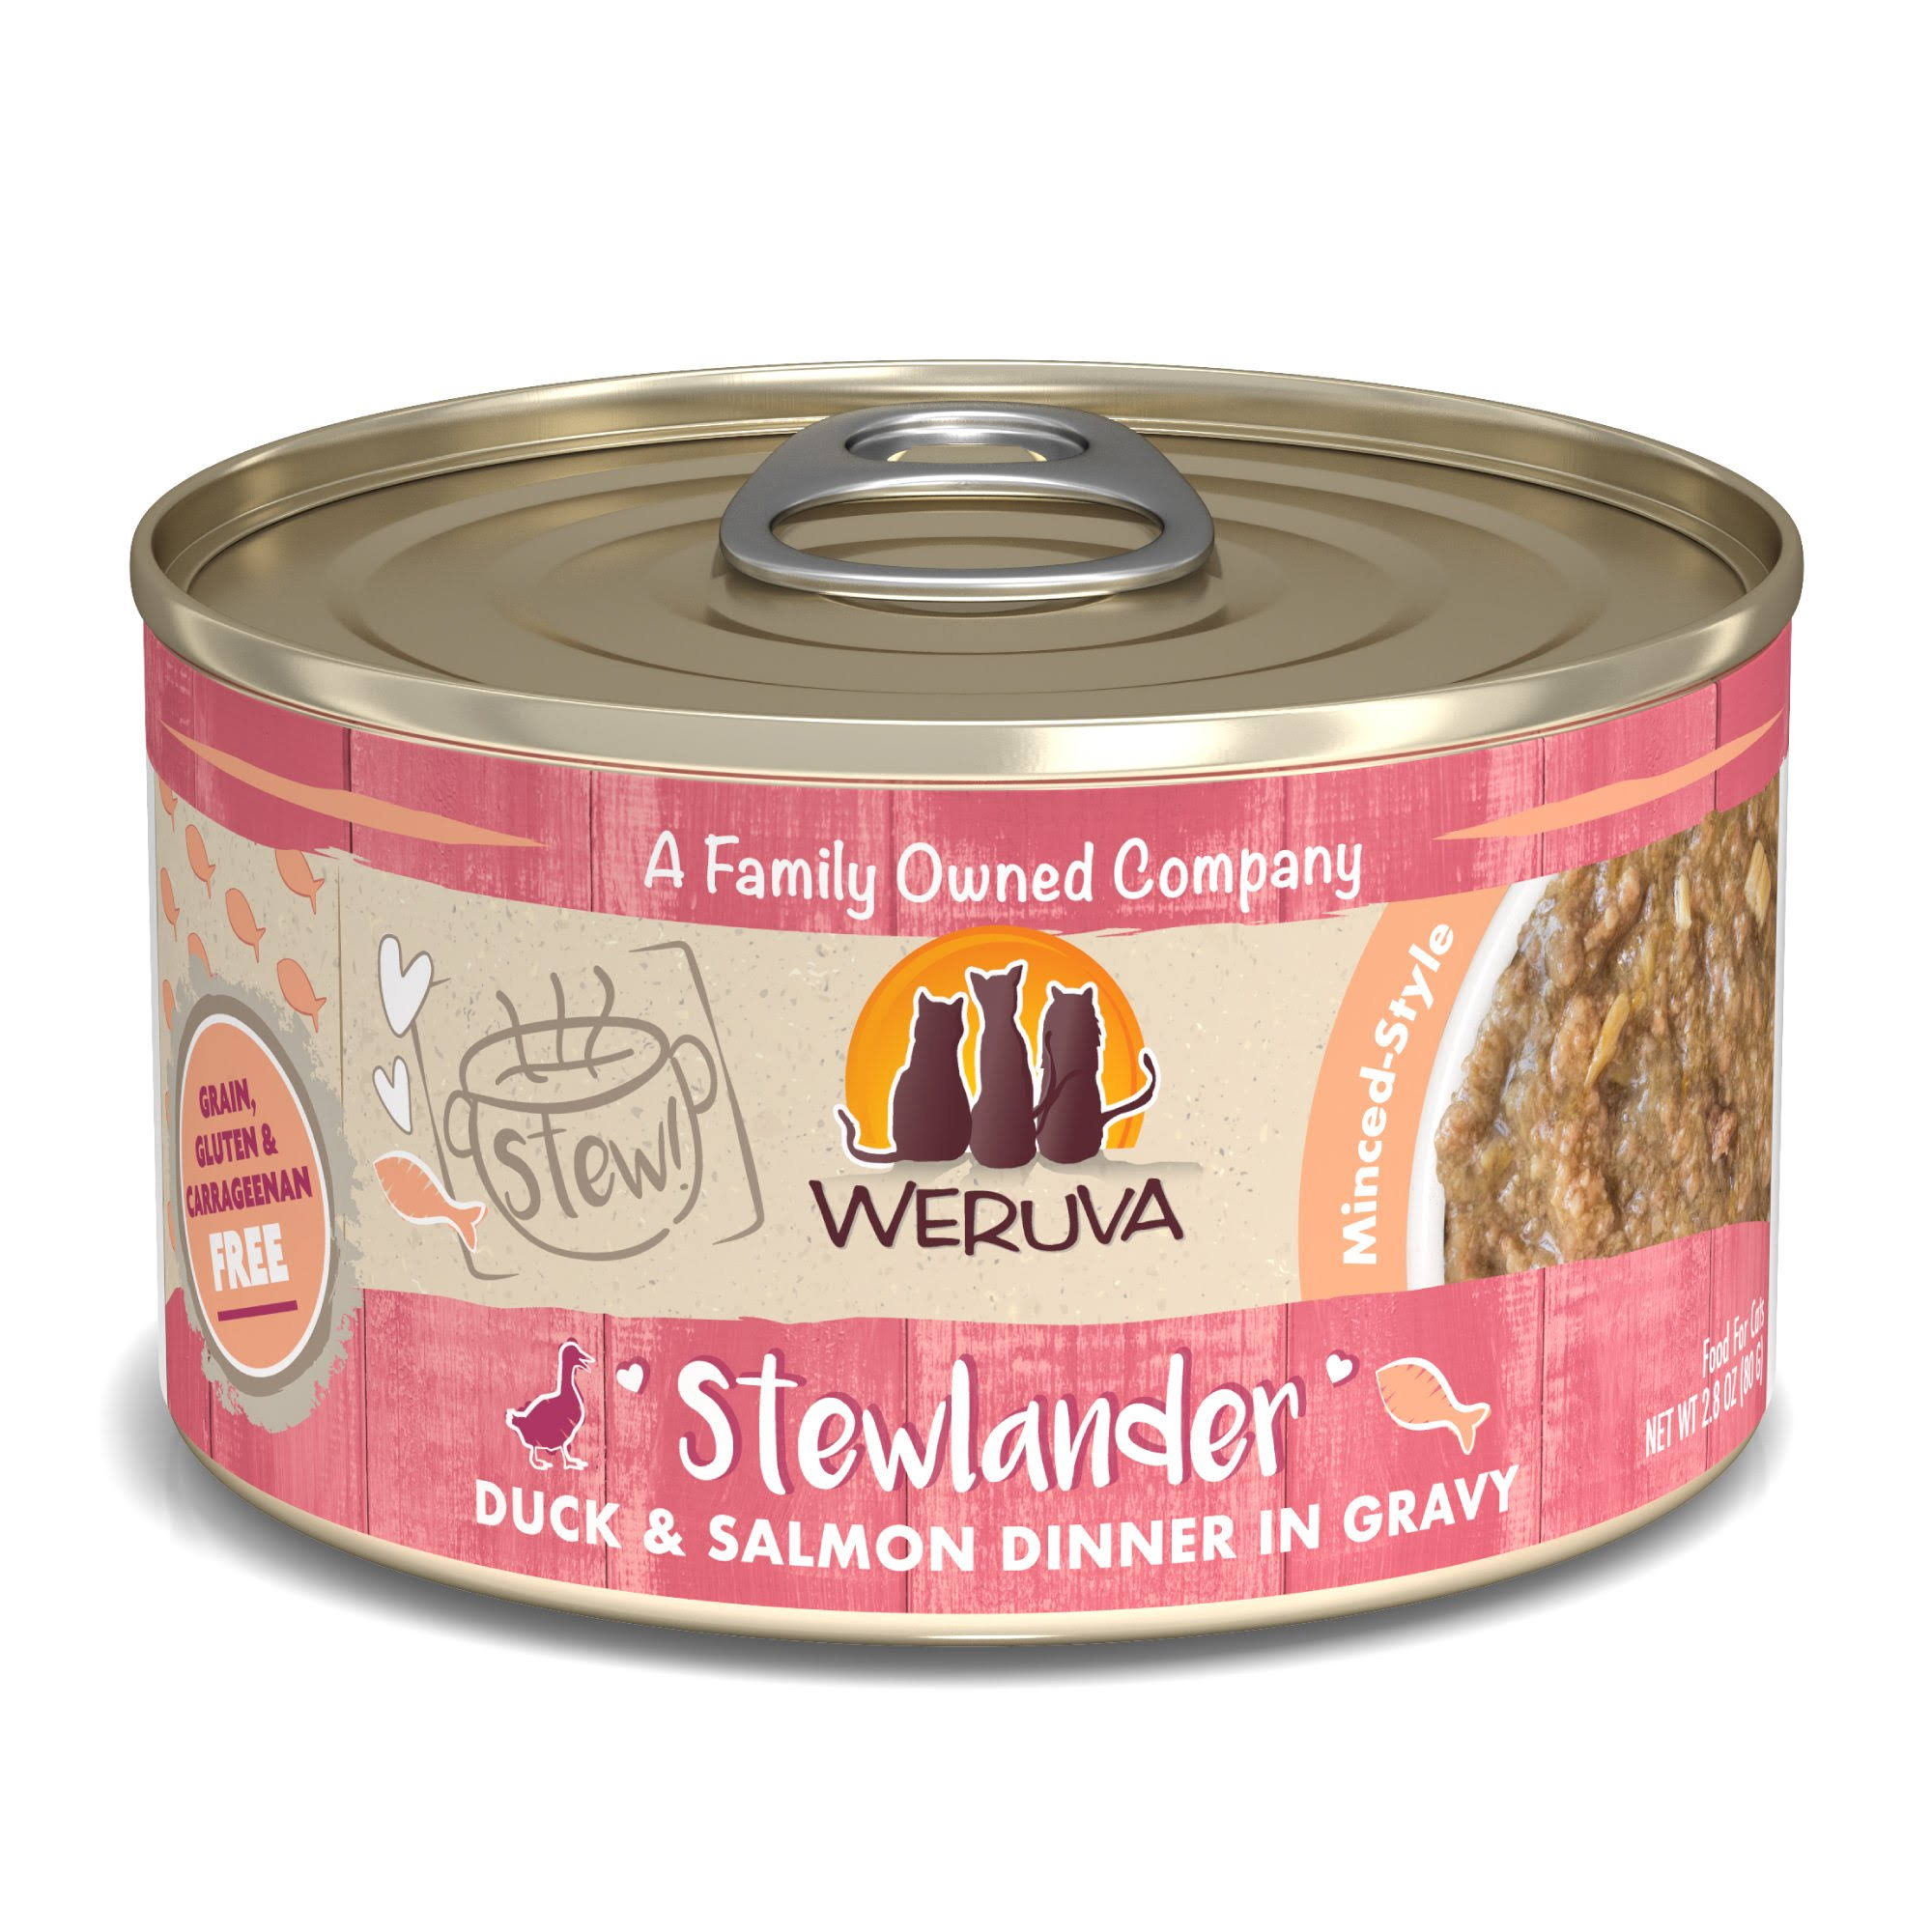 Weruva Stew! Stewlander Duck & Salmon Dinner in Gravy Food for Cats - 2.8 oz